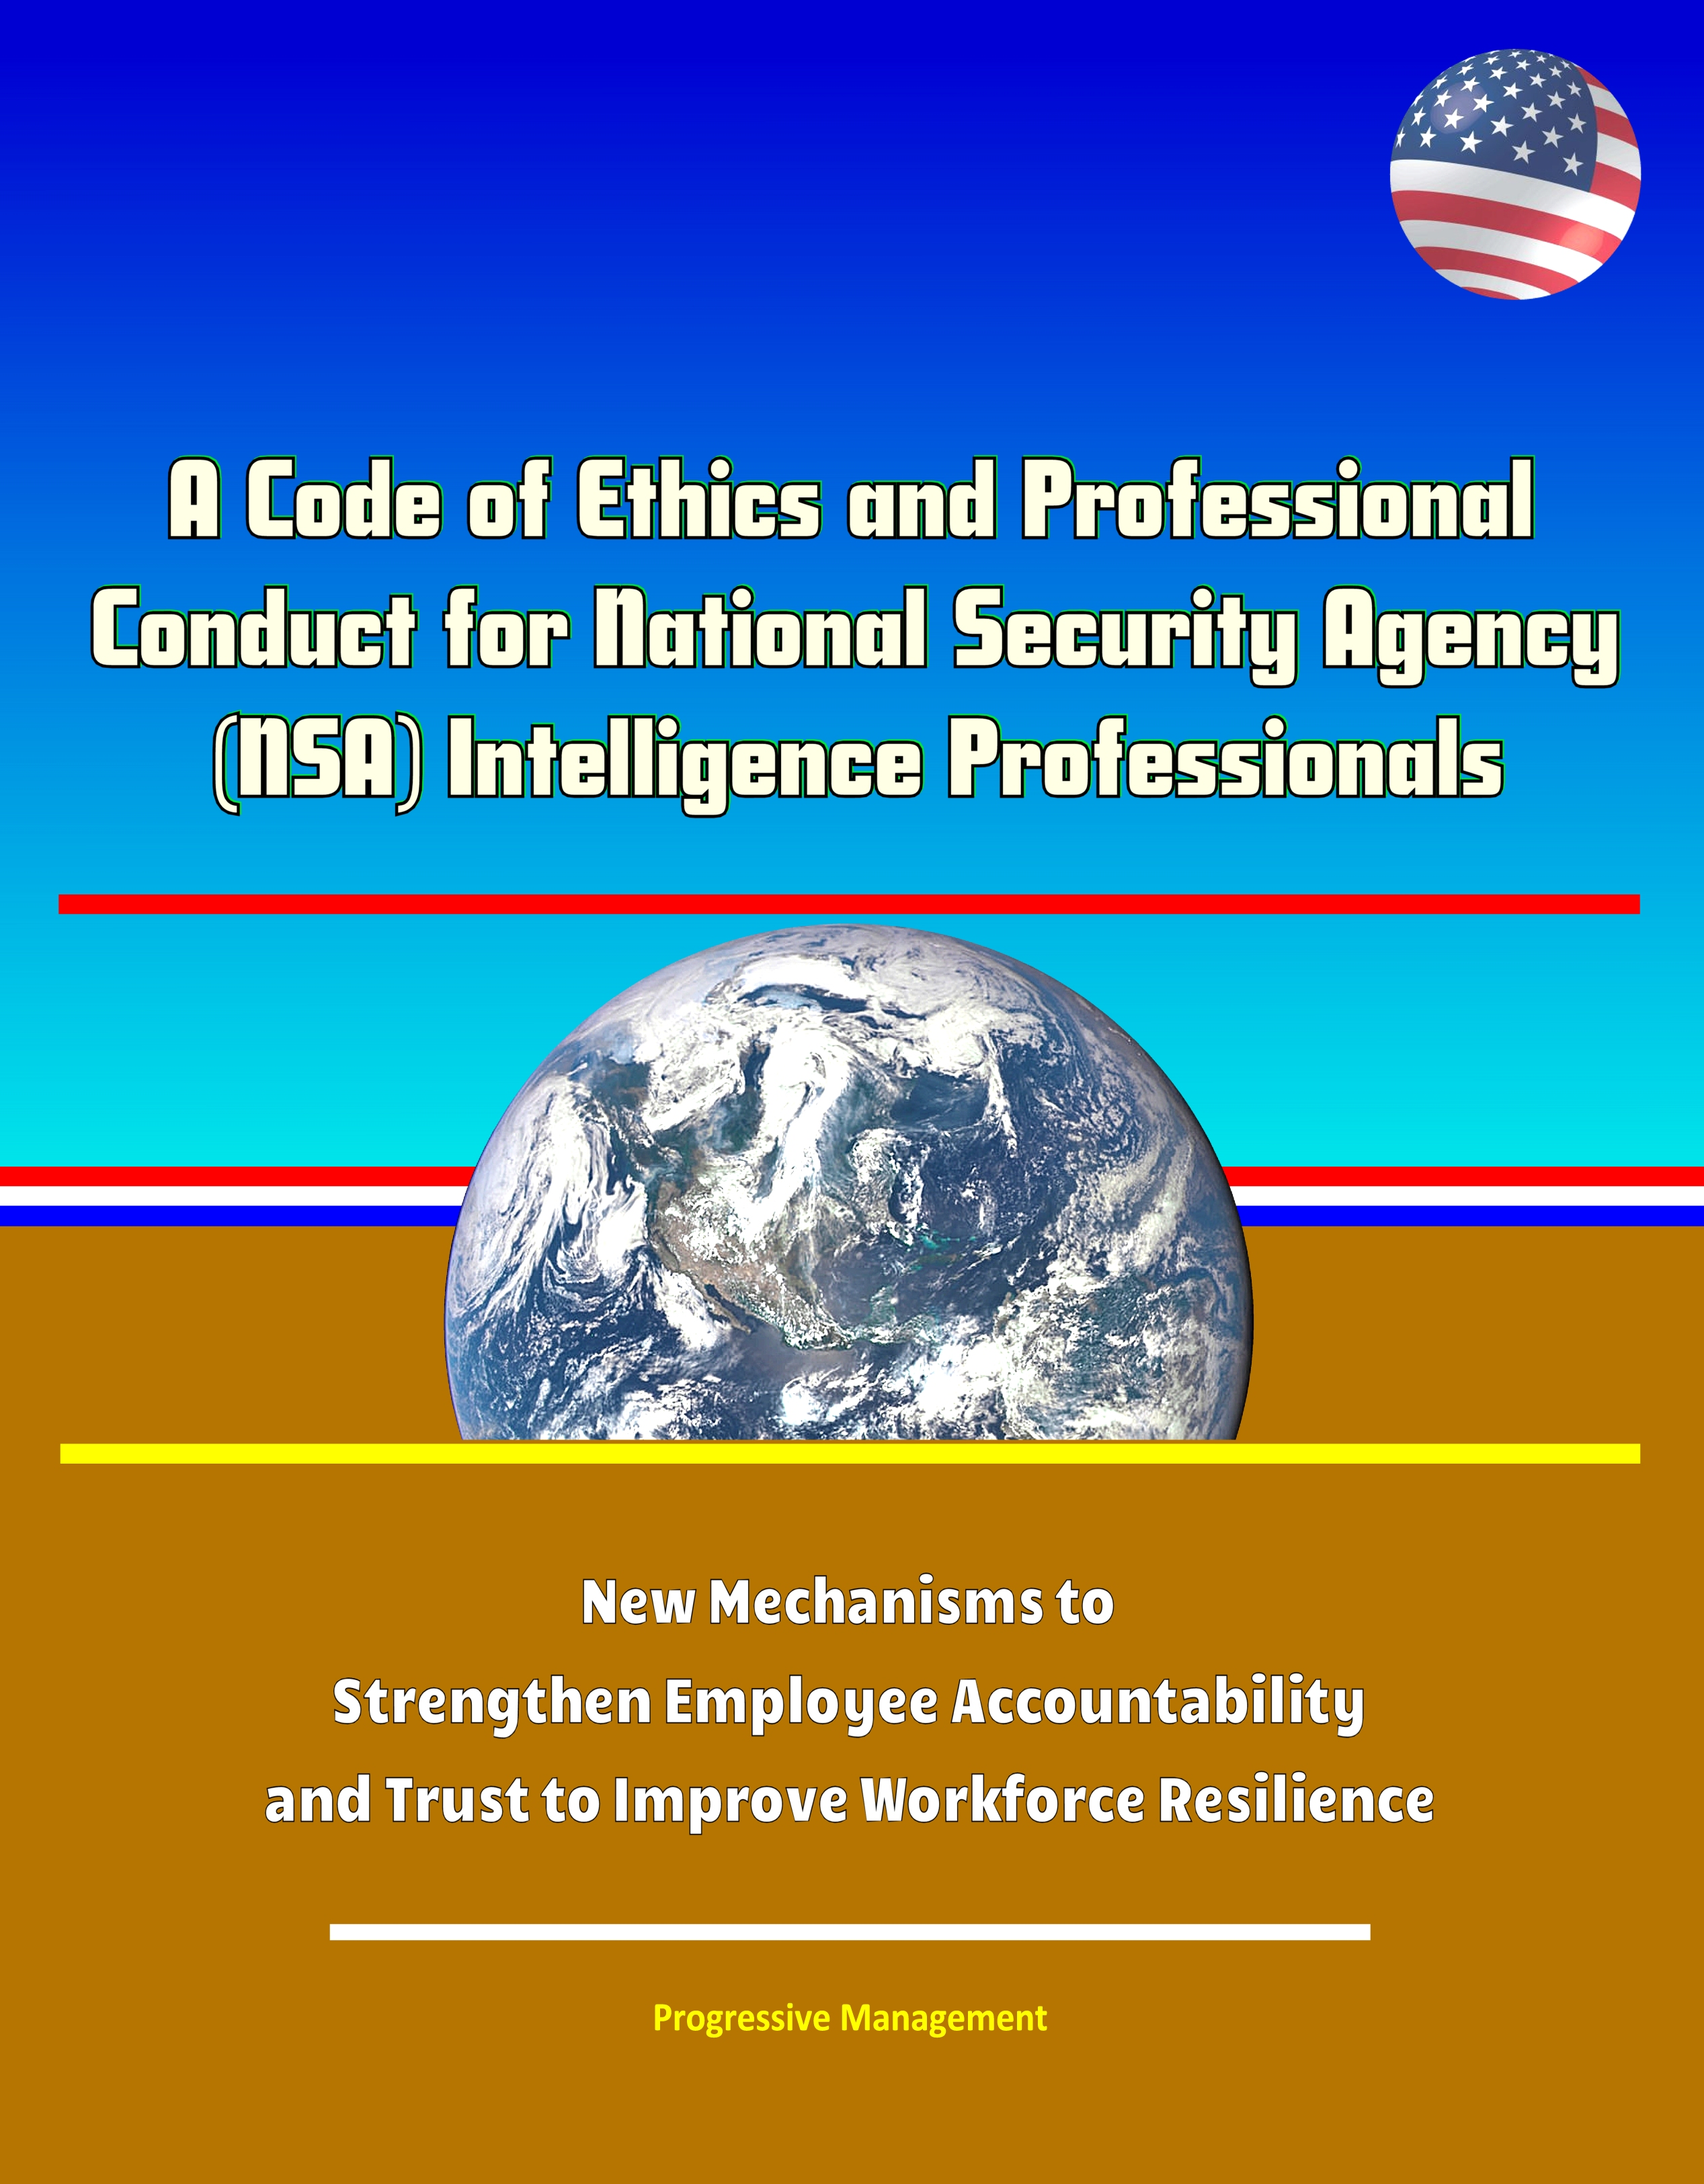 A Code of Ethics and Professional Conduct for National Security Agency  (NSA) Intelligence Professionals - New Mechanisms to Strengthen Employee